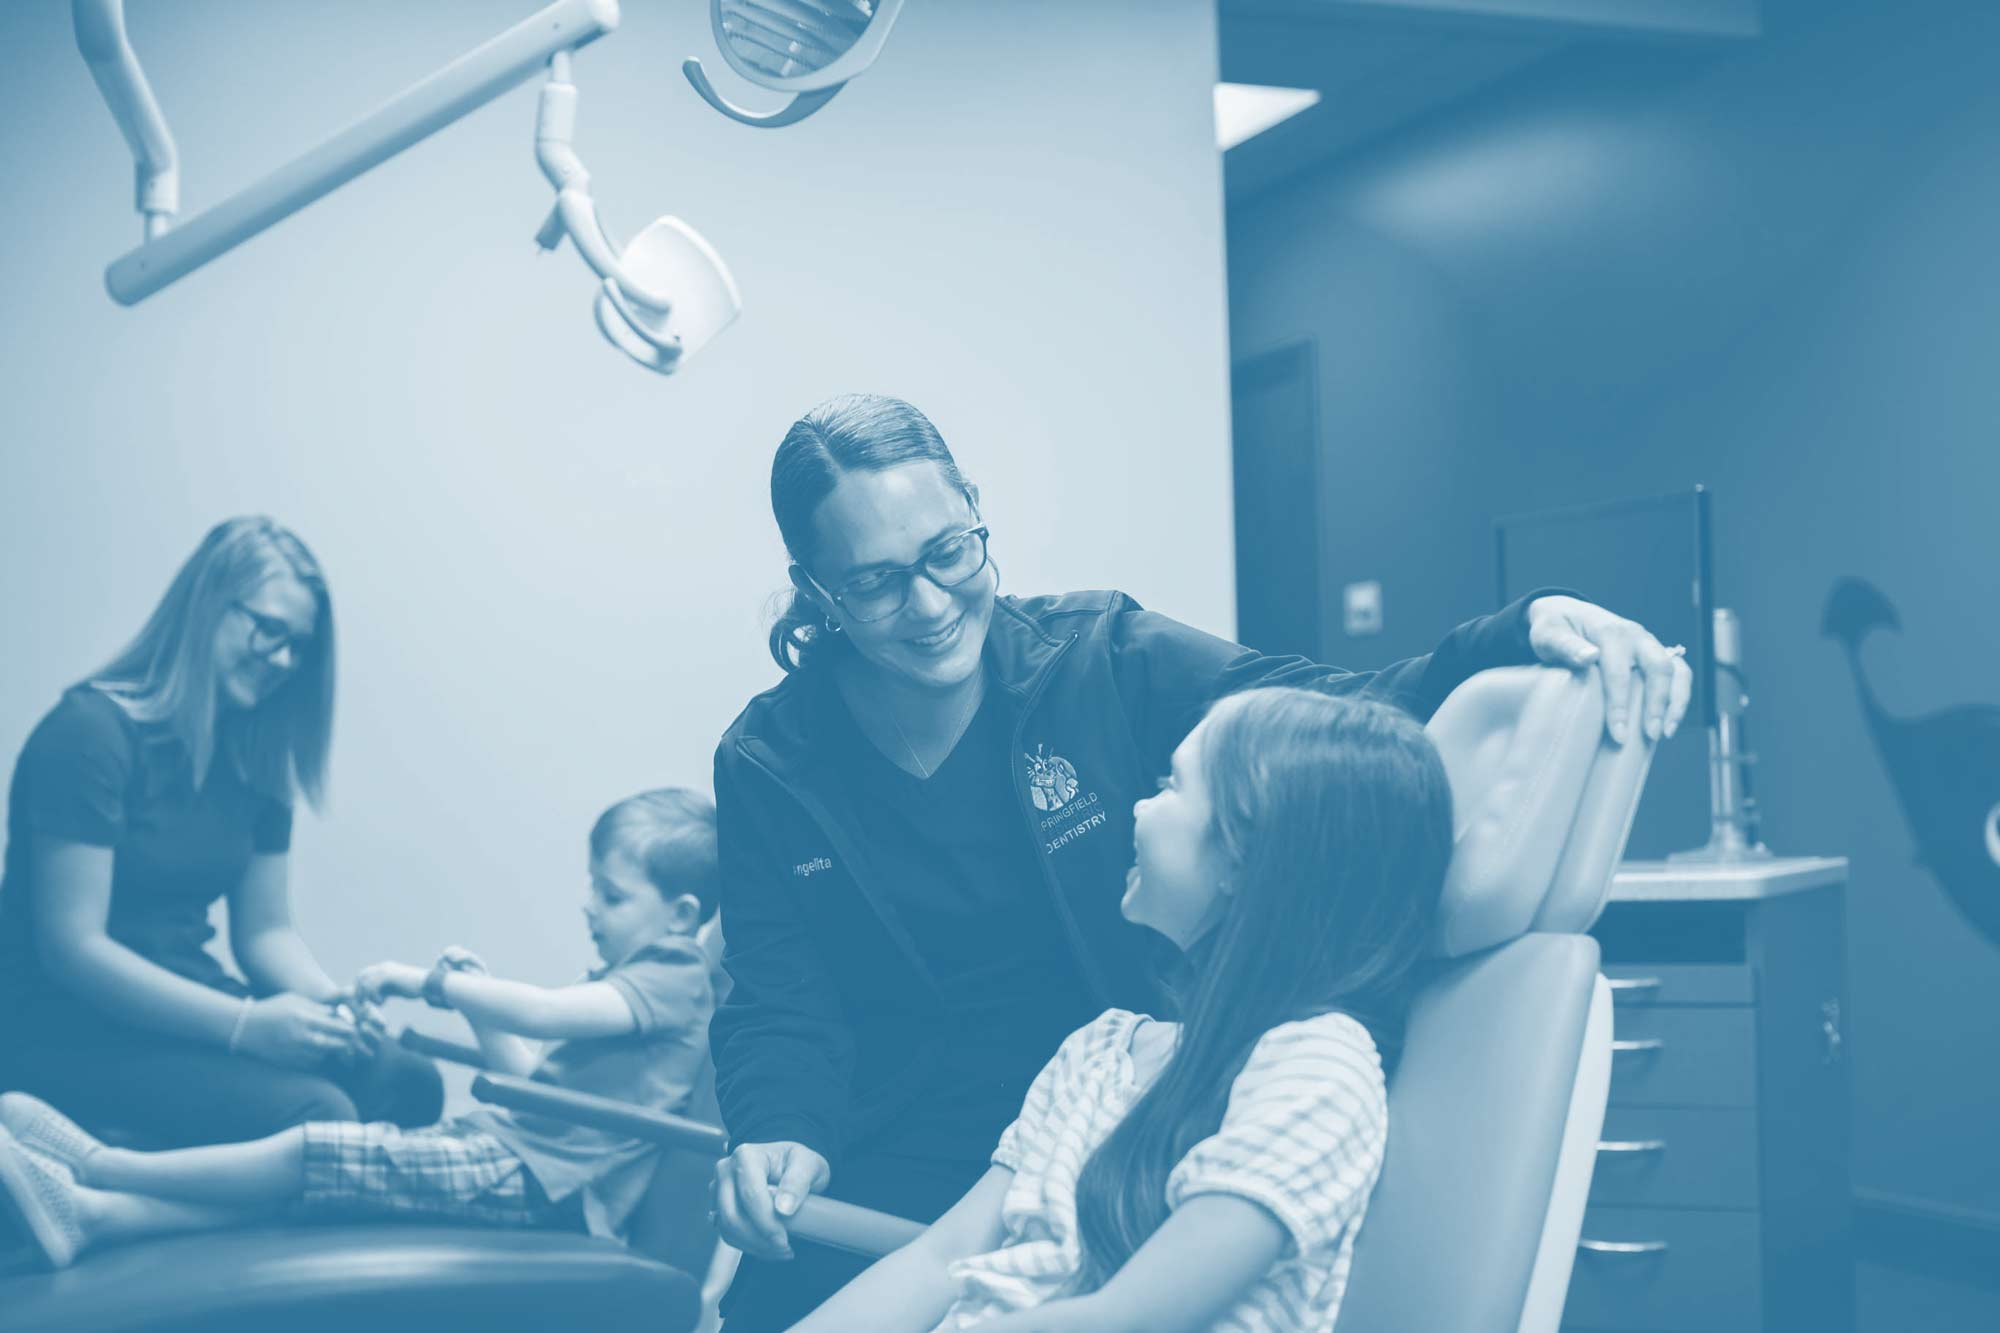 Photo of a pediatric dentist, a patient sitting in a dental chair, and a team member